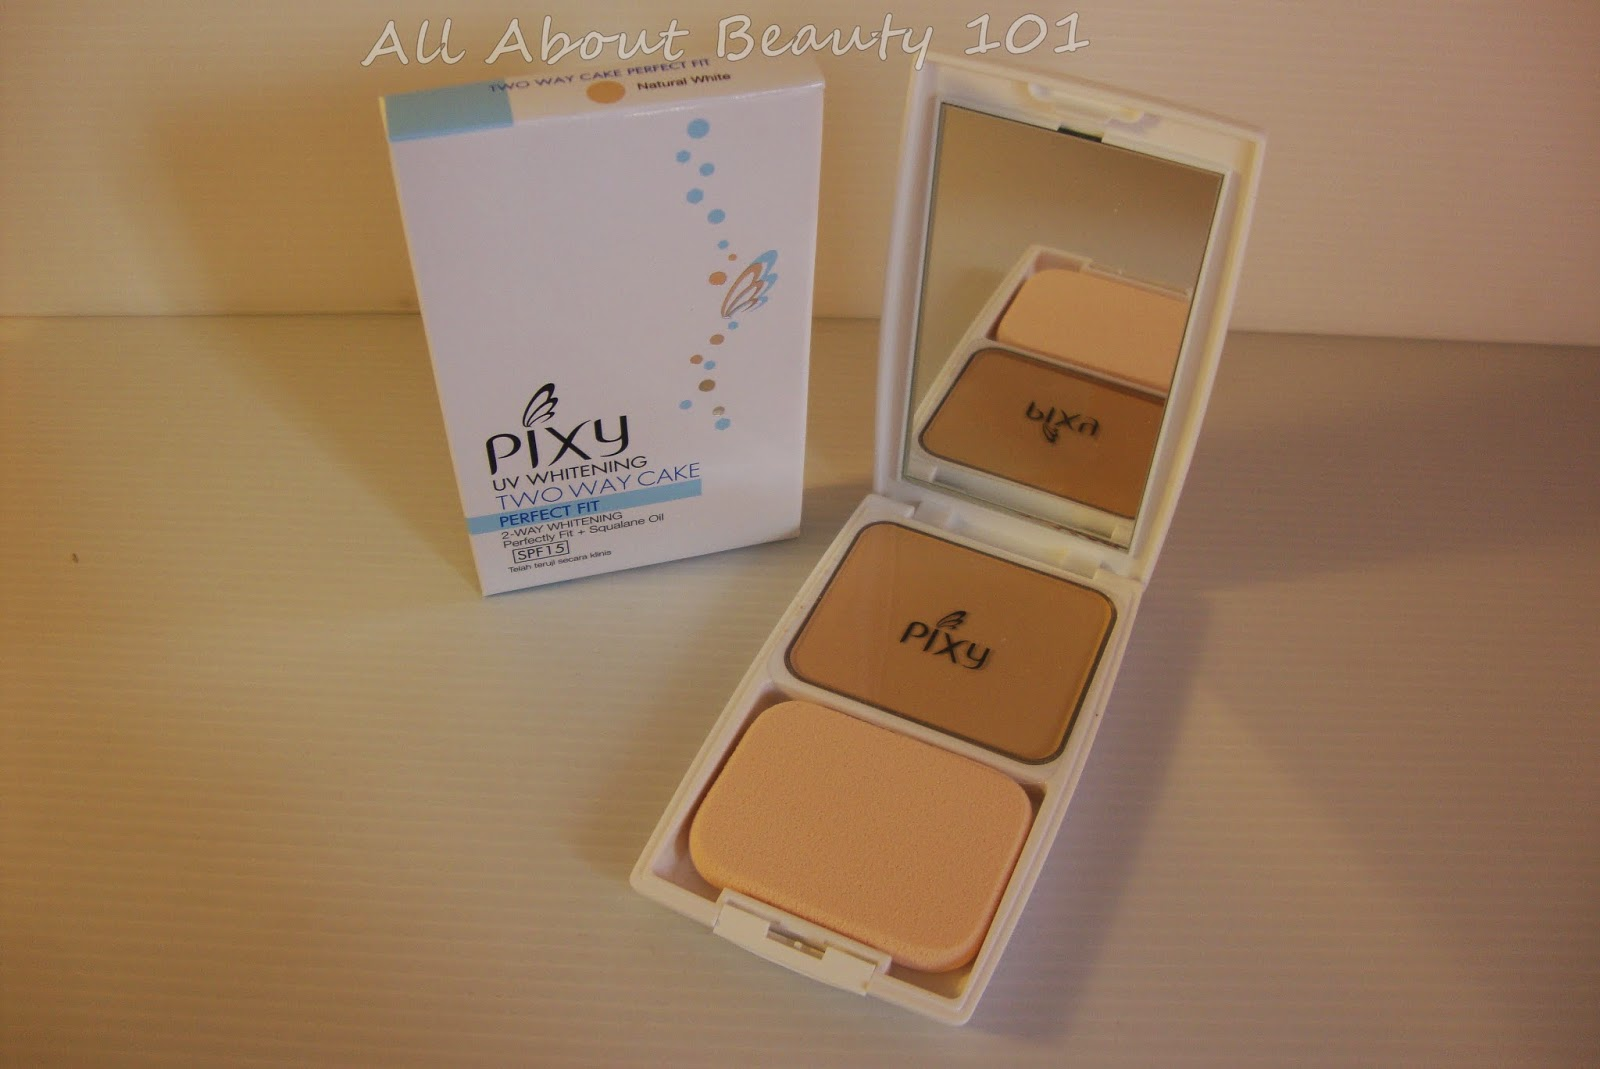 Pixy Uv Whitening Two Way Cake Perfect Fit All About Beauty 101 Compact Powder